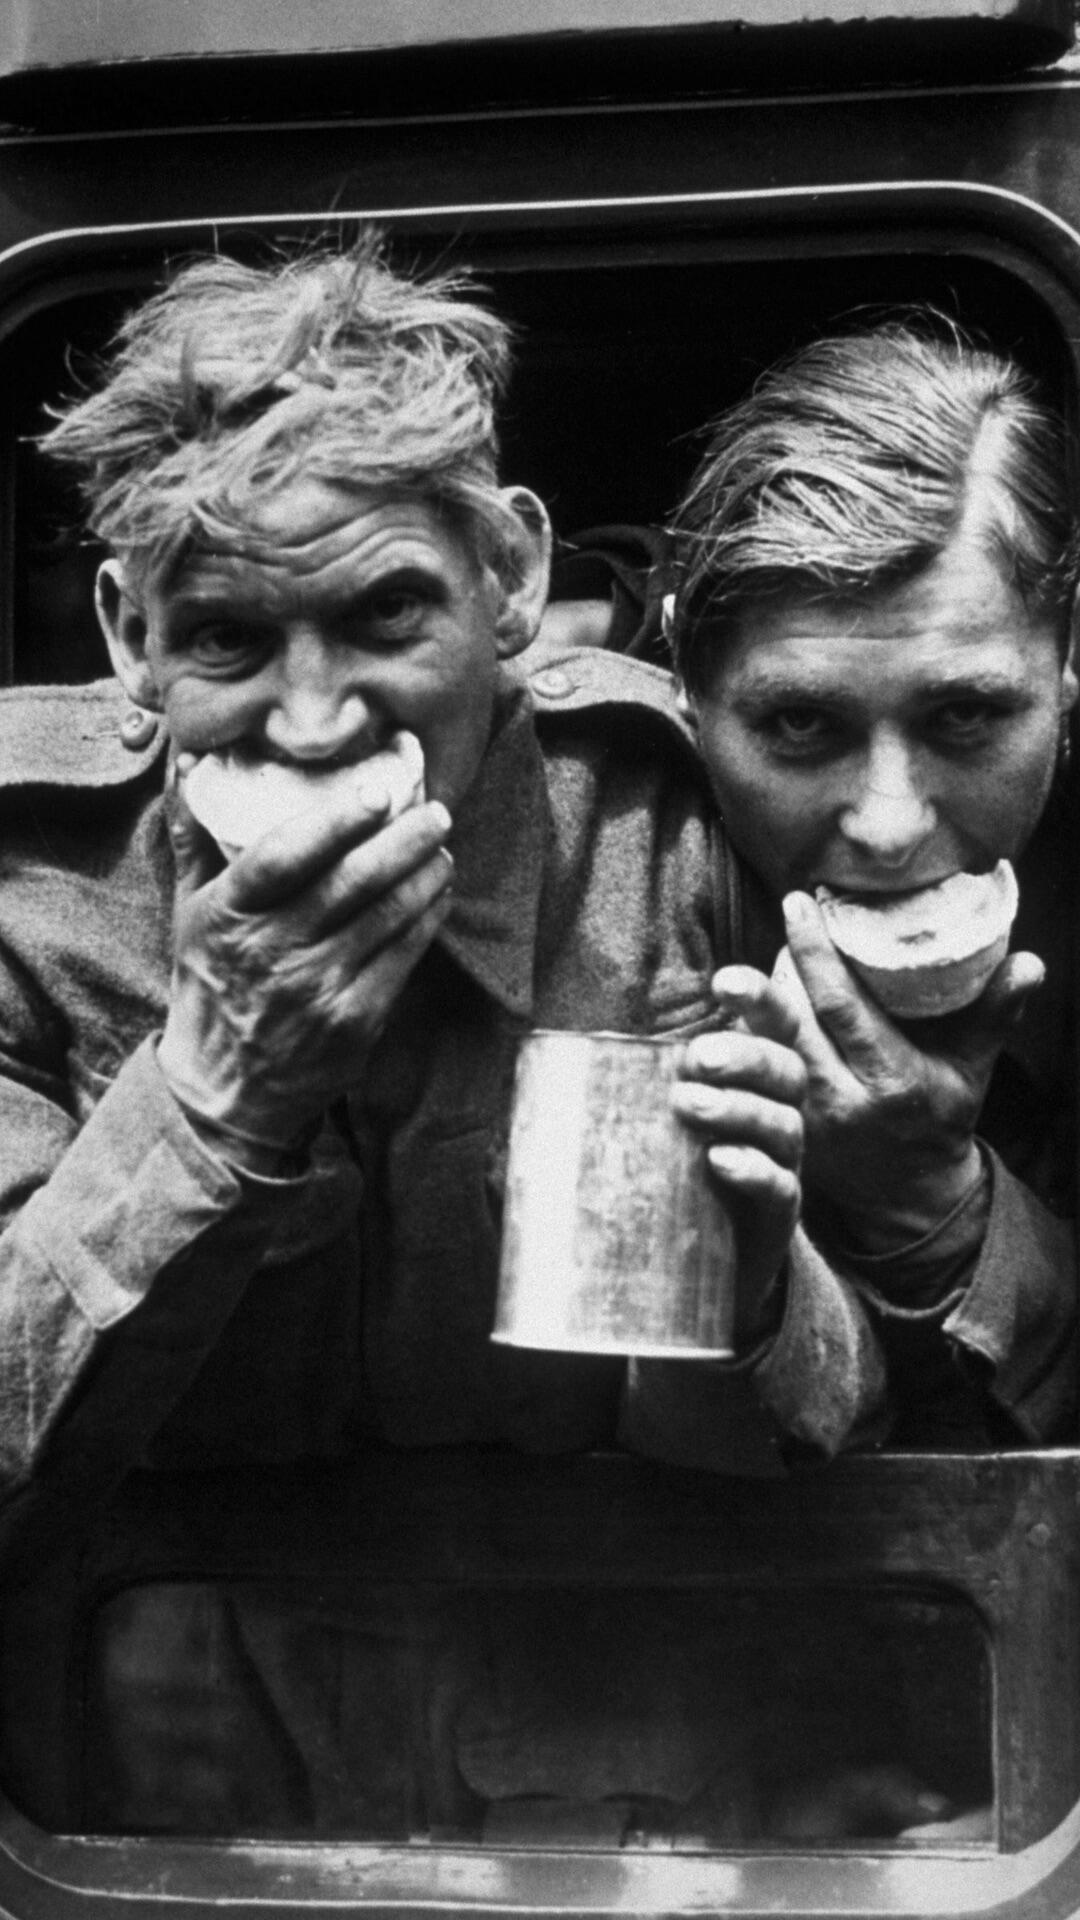 Two soldiers enjoying refreshments